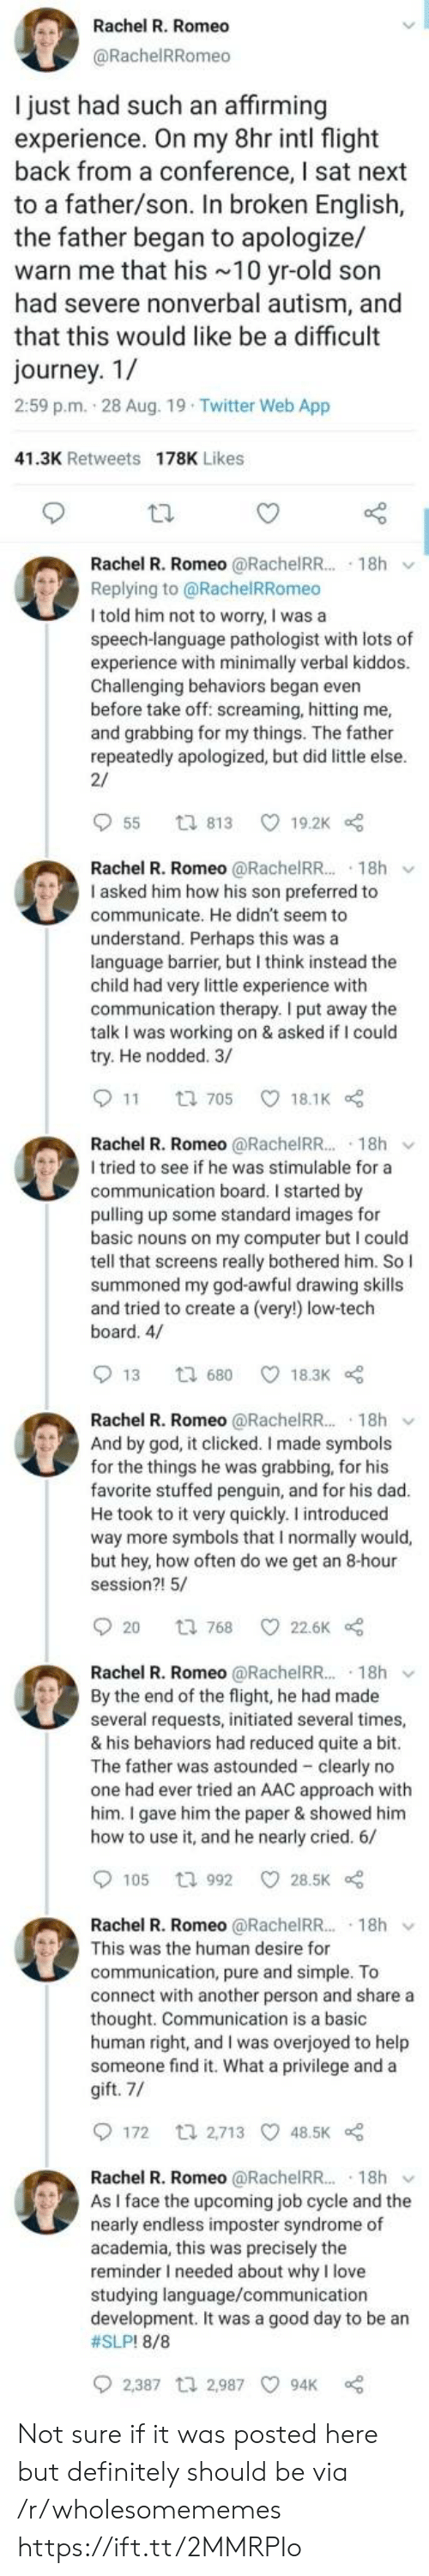 Dad, Definitely, and God: Rachel R. Romeo  @RachelRRomeo  I just had such an affirming  experience. On my 8hr intl flight  back from a conference, I sat next  to a father/son. In broken English,  the father began to apologize/  warn me that his 10 yr-old son  had severe nonverbal autism, and  that this would like be a difficult  journey. 1/  2:59 p.m. 28 Aug. 19 Twitter Web App  41.3K Retweets 178K Likes  Rachel R. Romeo @RachelRR.. 18h  Replying to@RachelRRomeo  I told him not to worry, I was a  speech-language pathologist with lots of  experience with minimally verbal kiddos.  Challenging behaviors began even  before take off: screaming, hitting me,  and grabbing for my things. The father  repeatedly apologized, but did little else.  2/  55  19.2K  ti 813  Rachel R. Romeo @RachelR.. 18h  I asked him how his son preferred to  communicate. He didn't seem to  understand. Perhaps this was a  language barrier, but I think instead the  child had very little experience with  communication therapy. I put away the  talk I was working on & asked if I could  try. He nodded. 3/  11  18.1K  t 705  Rachel R. Romeo @RachelR... 18h  I tried to see if he was stimulable for a  communication board. I started by  pulling up some standard images for  basic nouns on my computer but I could  tell that screens really bothered him. So I  summoned my god-awful drawing skills  and tried to create a (very!) low-tech  board. 4/  13  18.3K  t 680  Rachel R. Romeo @RachelRR.. 18h  And by god, it clicked. I made symbols  for the things he was grabbing, for his  favorite stuffed penguin, and for his dad.  He took to it very quickly. I introduced  way more symbols that I normally would,  but hey, how often do we get an 8-hour  session?! 5/  20  22.6K  t 768  Rachel R. Romeo @RachelRR.. 18h  By the end of the flight, he had made  several requests, initiated several times,  & his behaviors had reduced quite a bit.  The father was astounded clearly no  one had ever tried an AAC approach with  him. I 